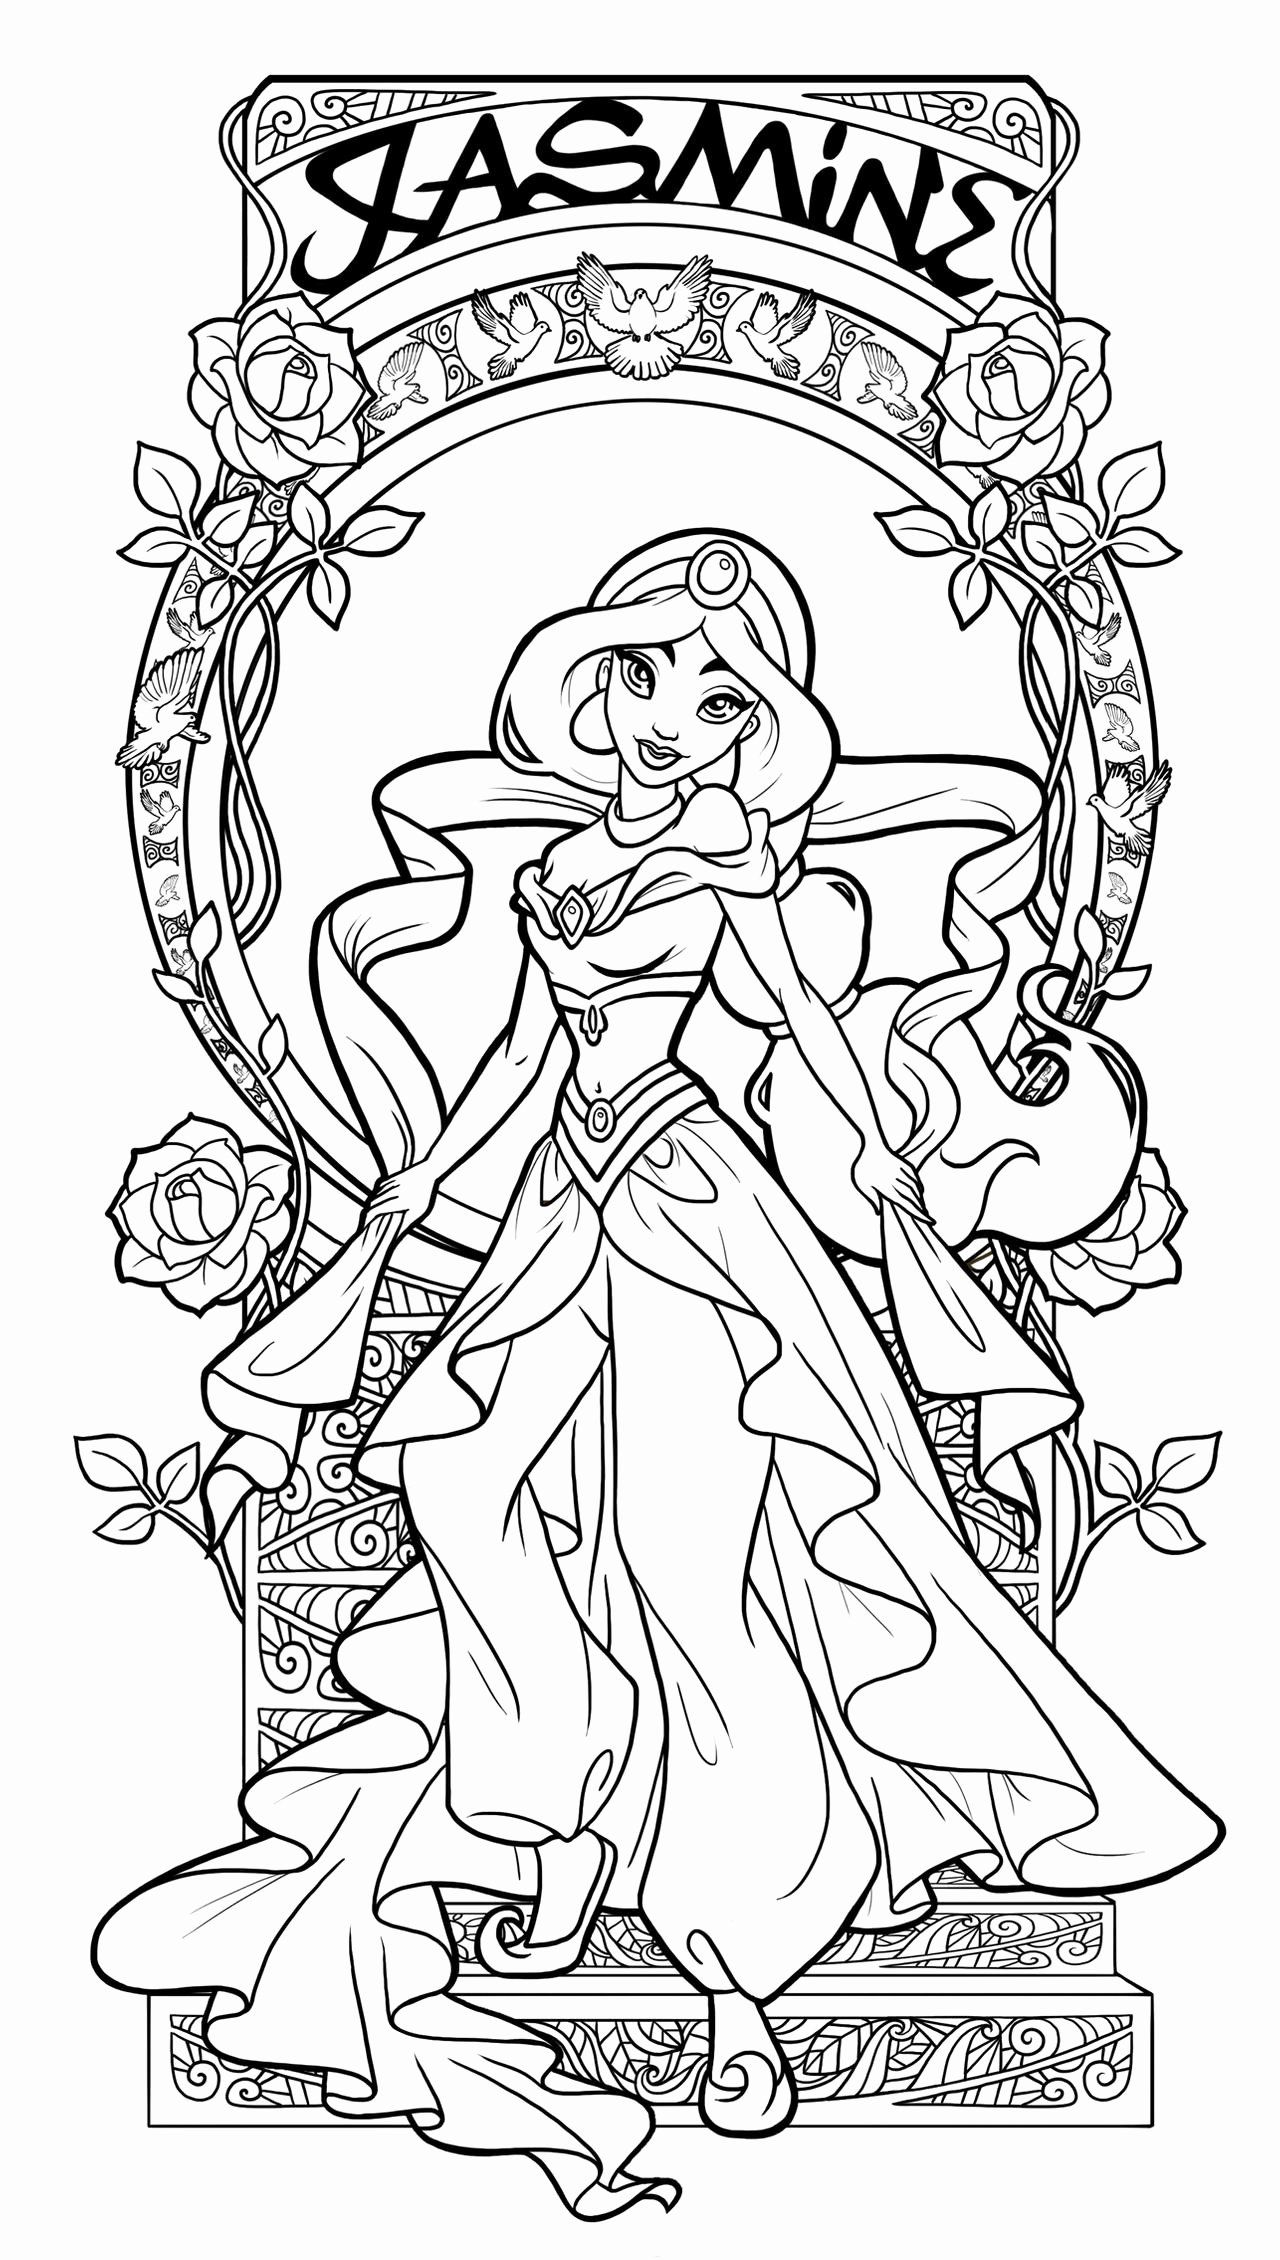 Coloring Books For Adults Disney Unique Jasmine Art Nouveau Lineart By Paola Tosca In 2020 Disney Princess Coloring Pages Disney Coloring Pages Princess Coloring Pages